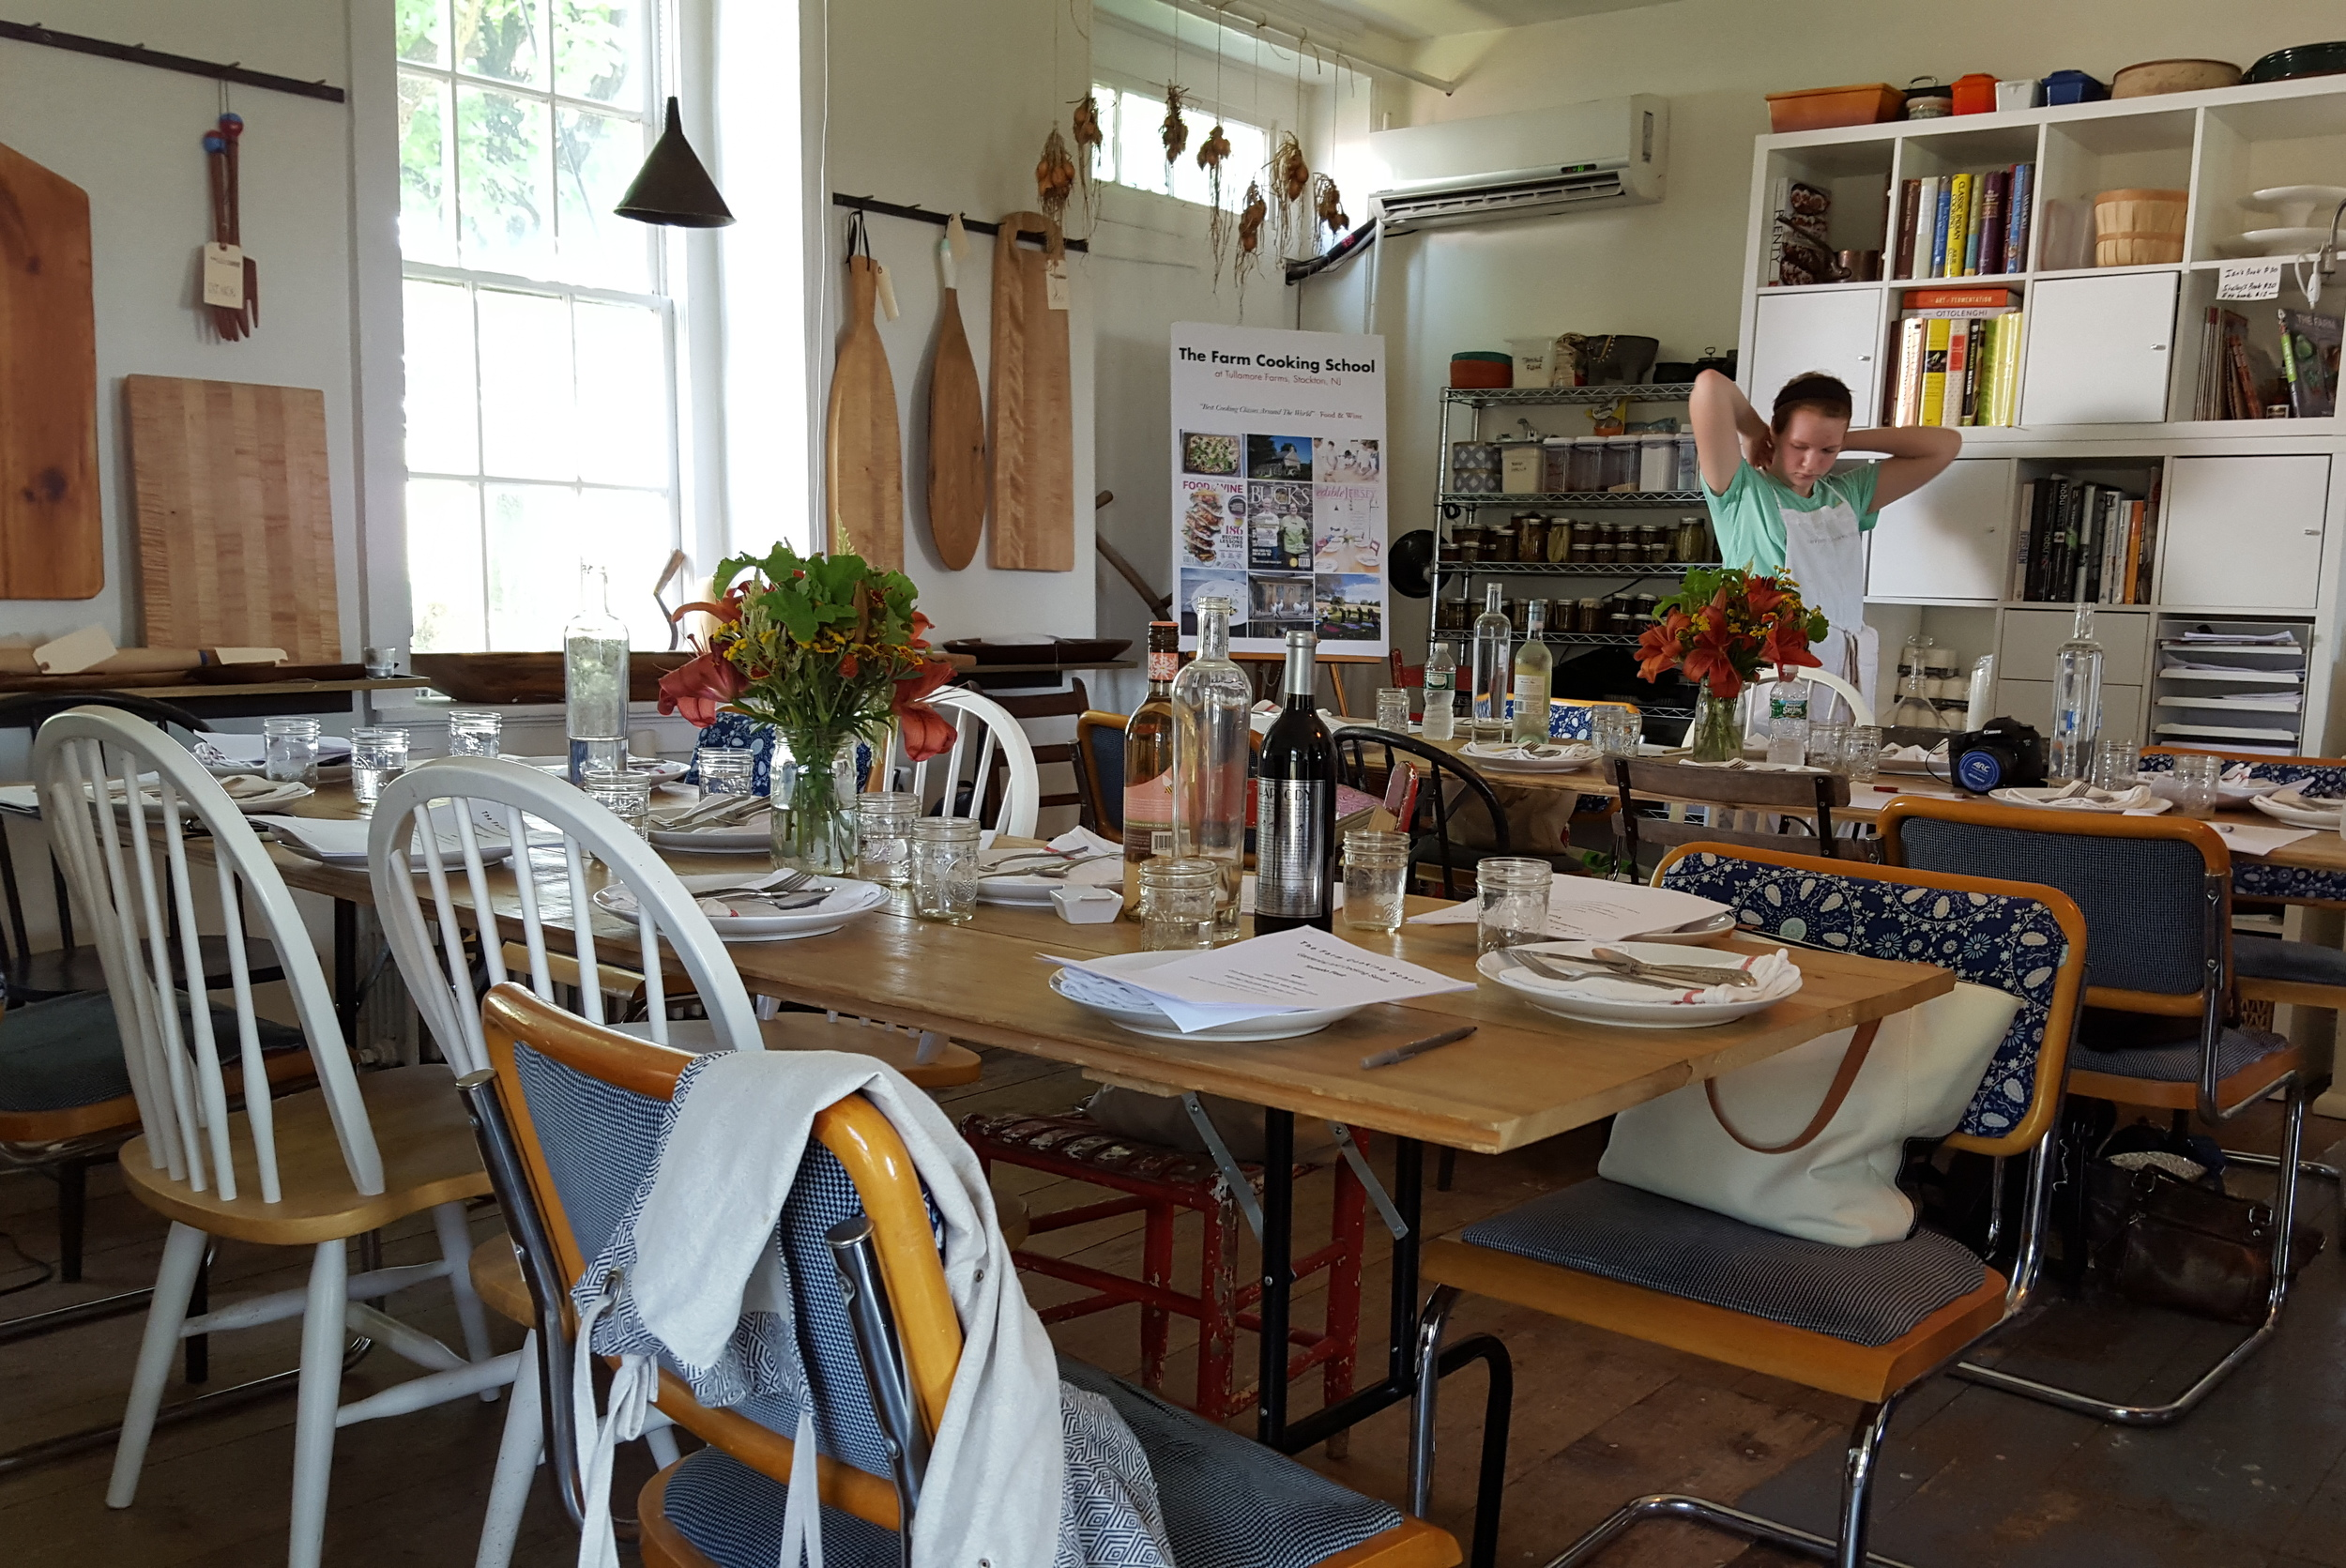 The dining area of The Farm Cooking School